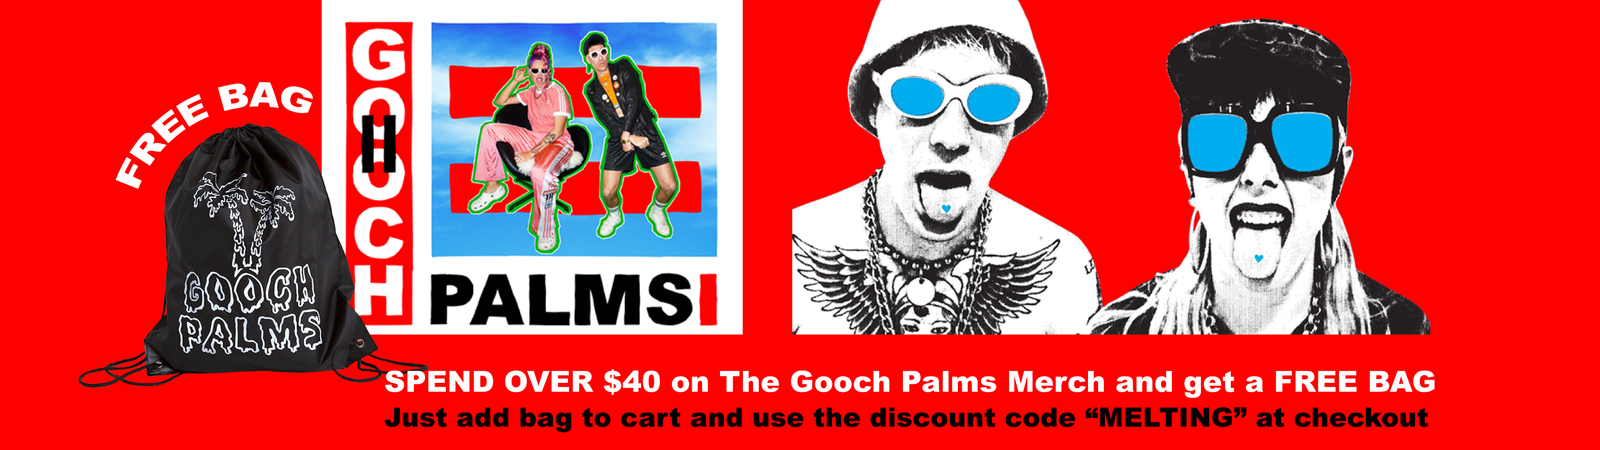 The Gooch Palms